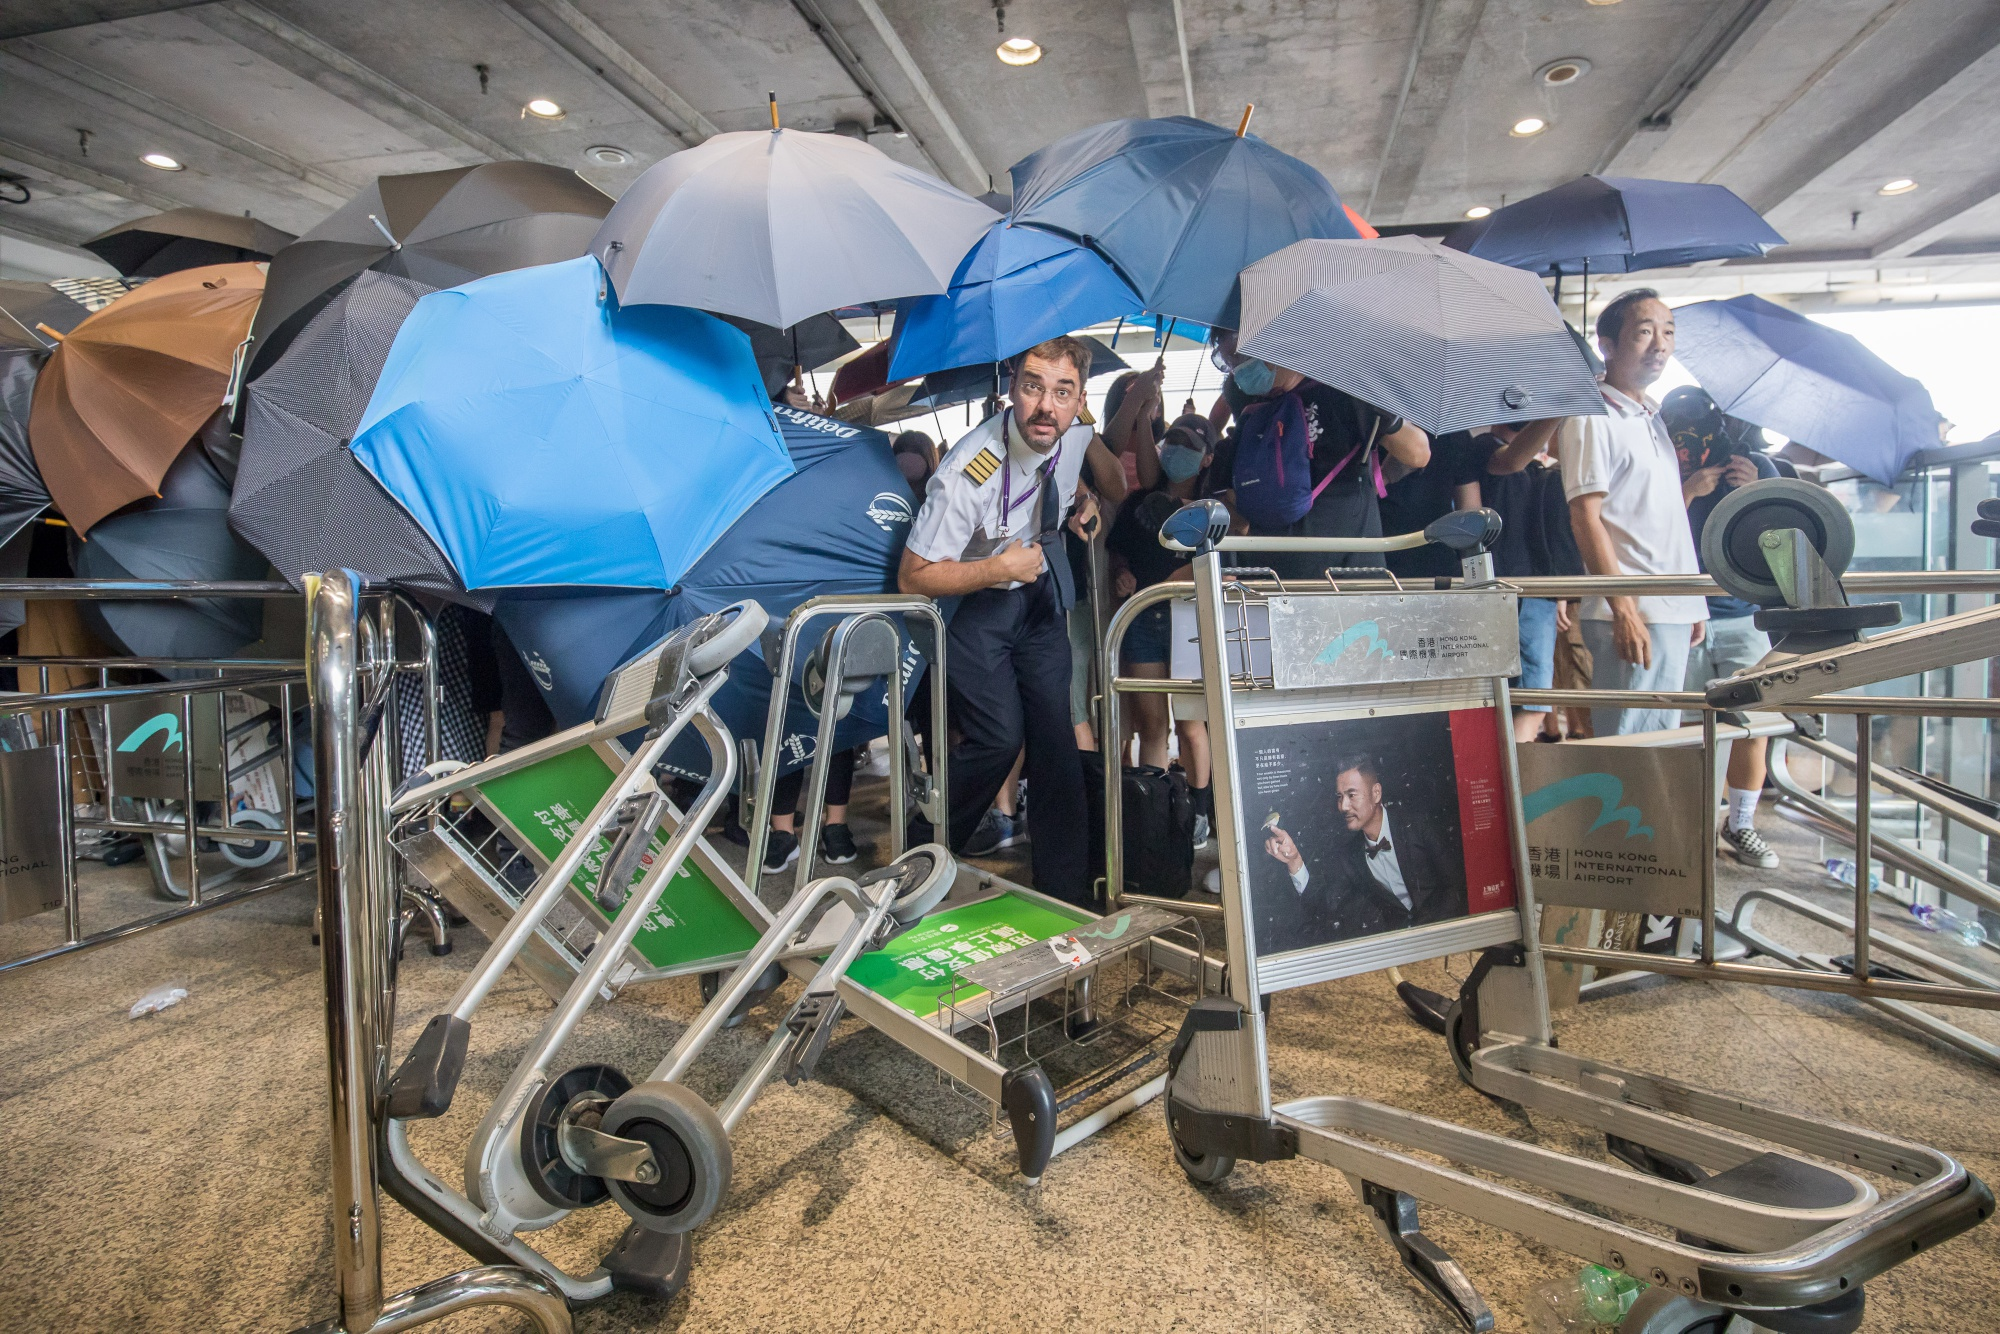 'Spare Our Passengers': Hong Kong Airports Plea to Protesters